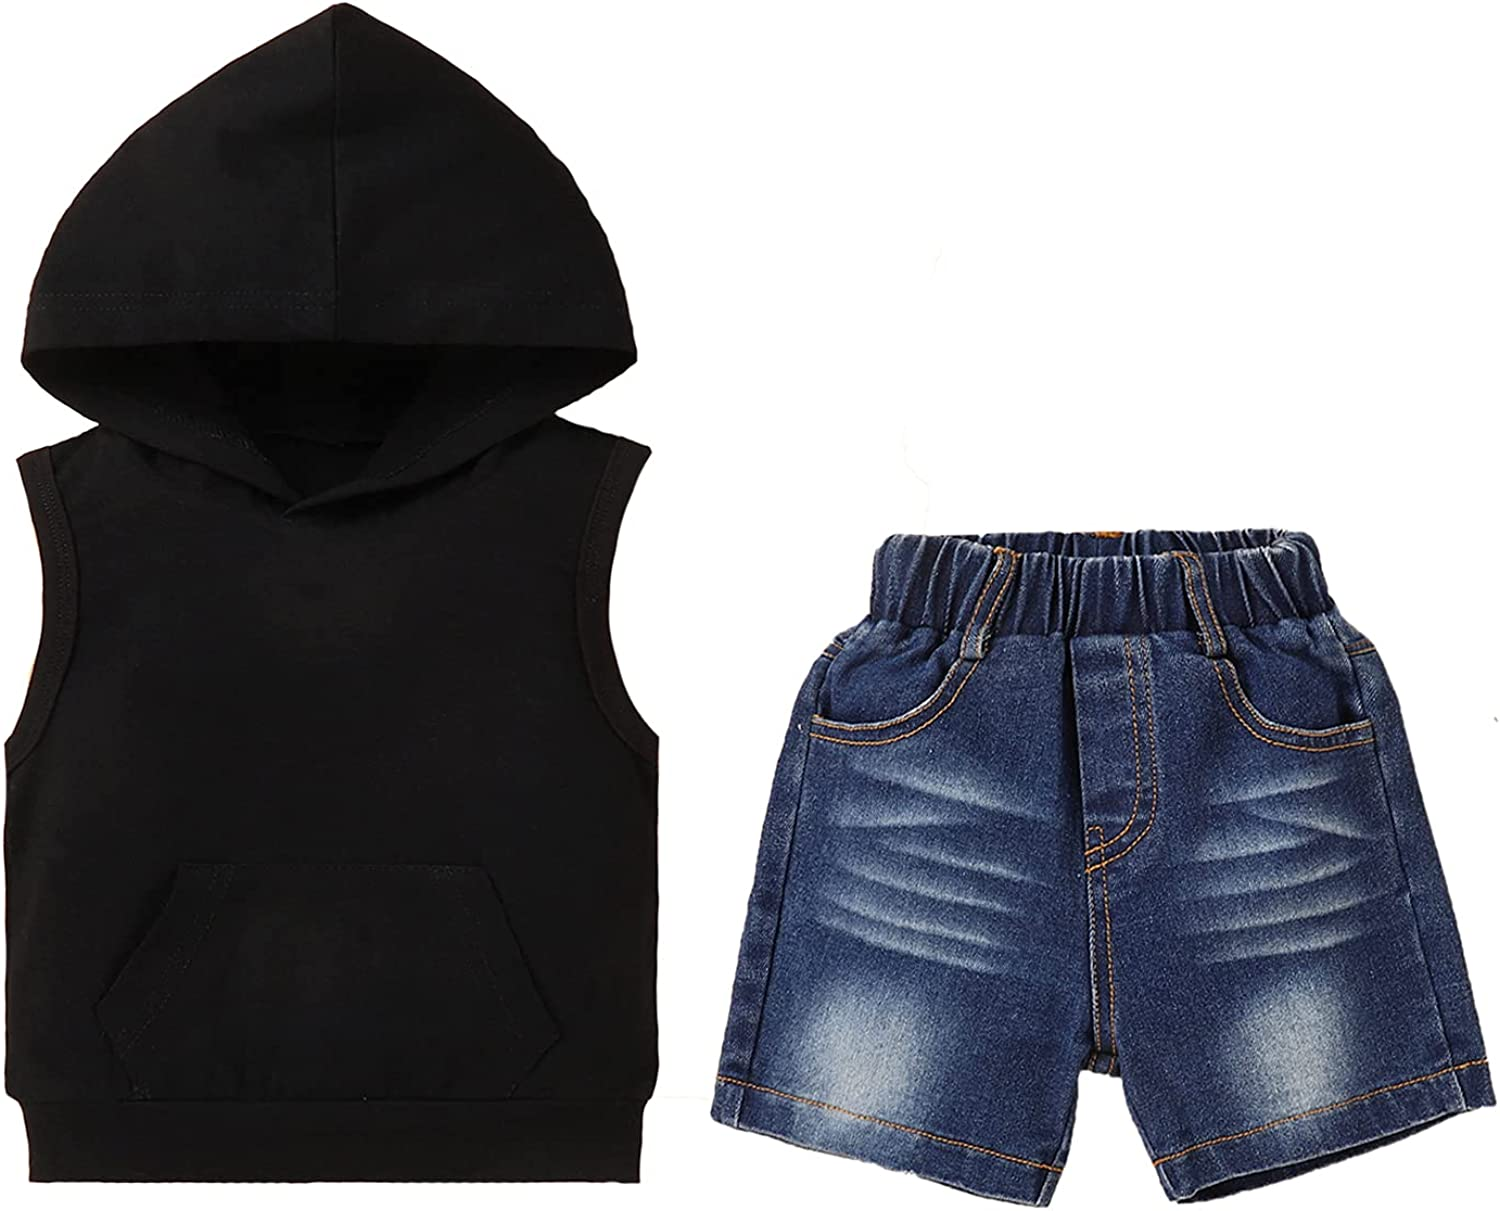 Baby Boy Clothes Summer Black Hooded Vest + Baby Boy Jeans Shorts Set 2 Years